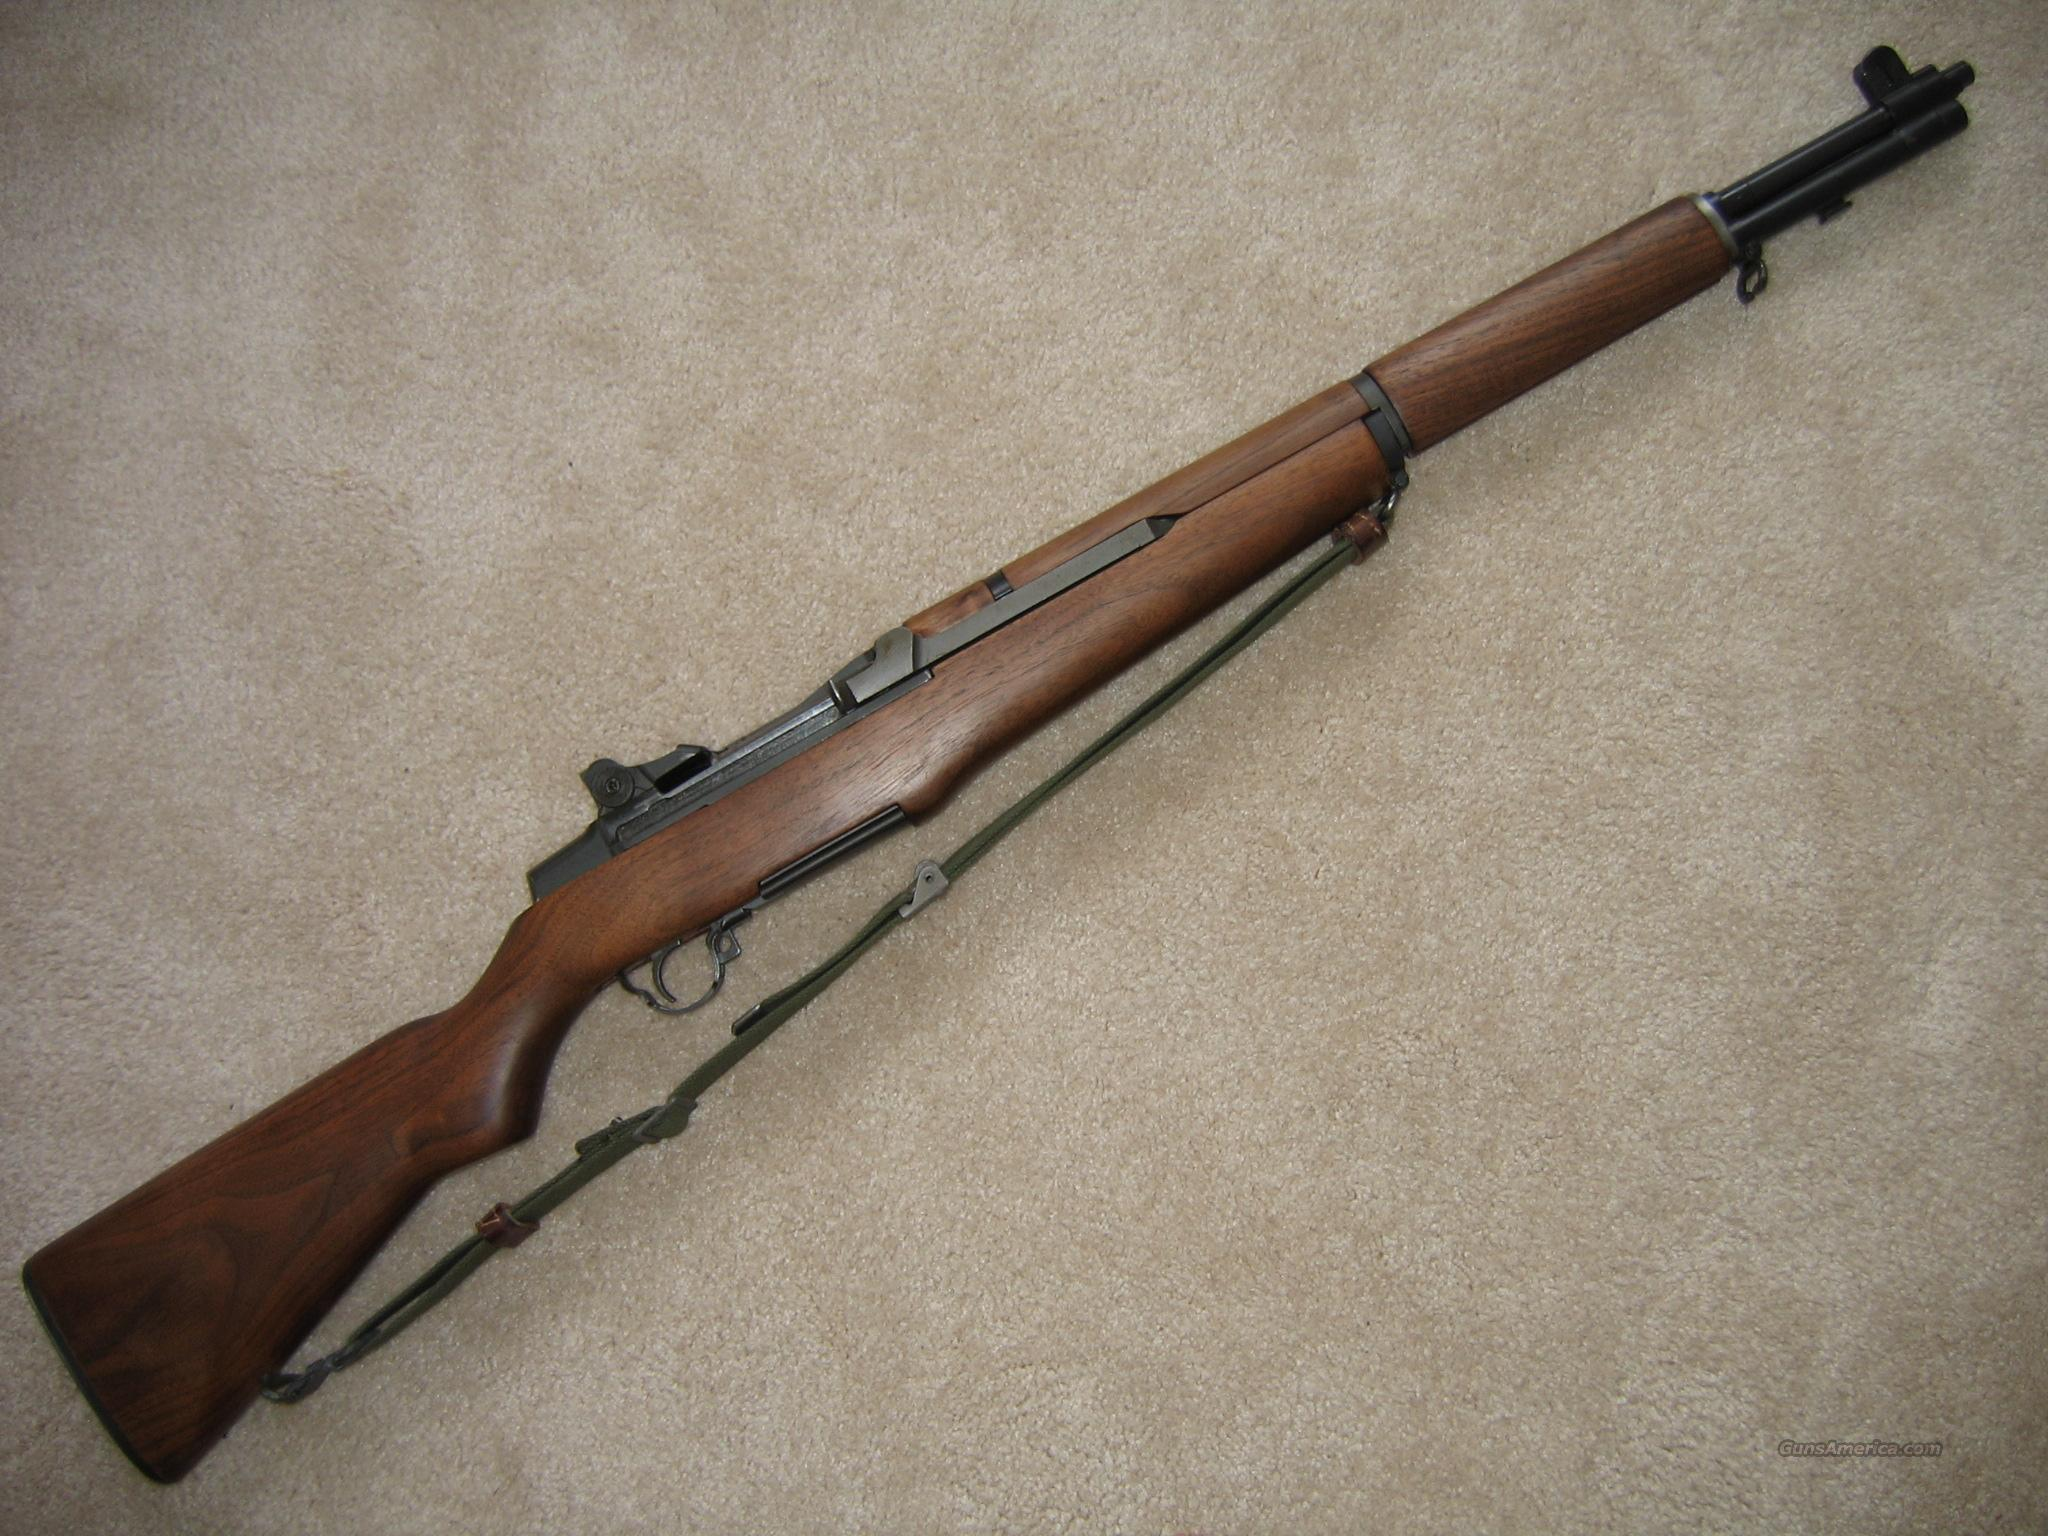 International Harvester (IHC) M1 Garand  Guns > Rifles > Military Misc. Rifles US > M1 Garand